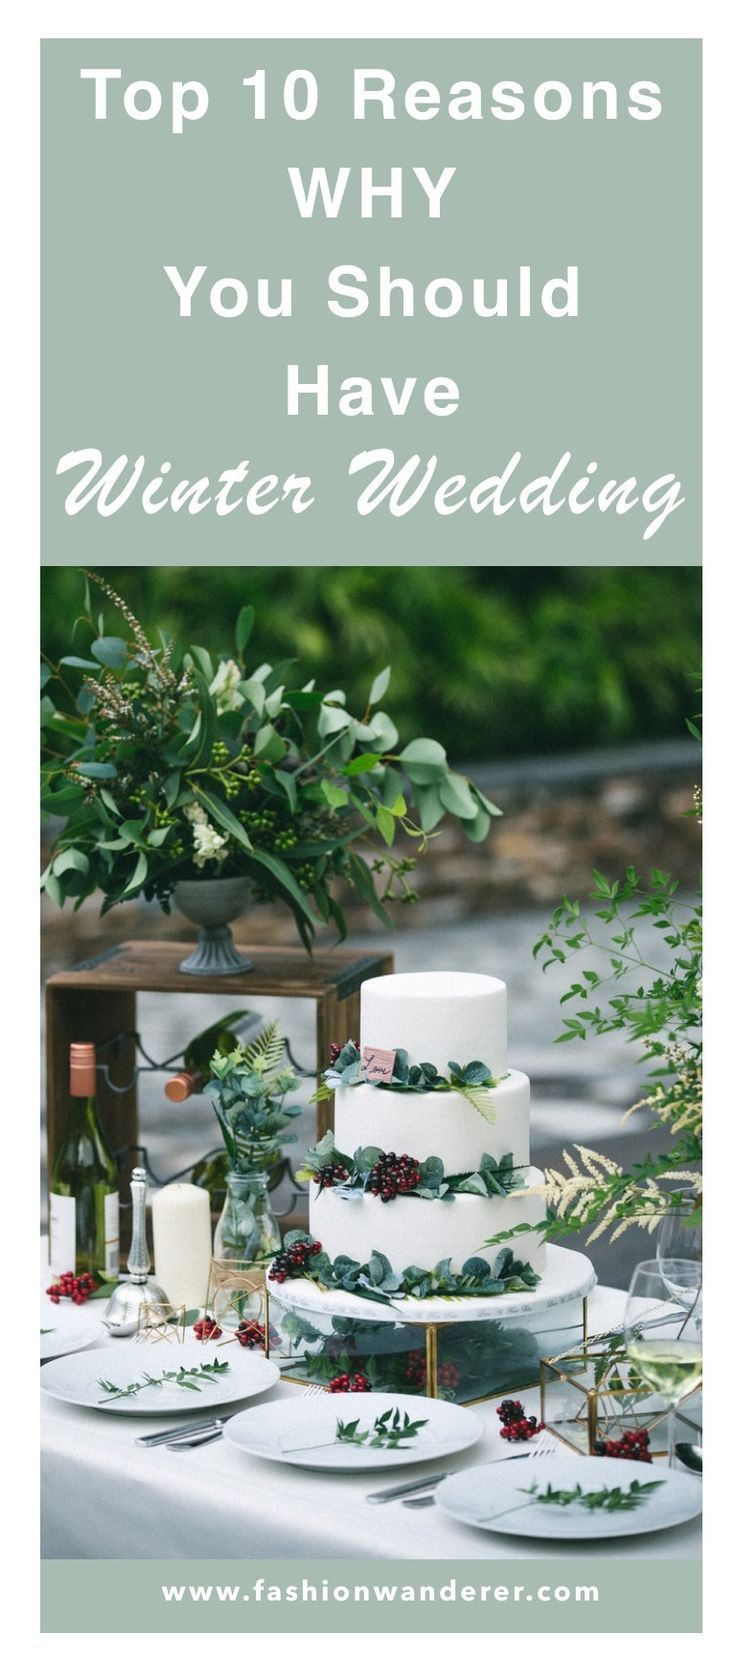 These are BEST rustic winter wedding ideas I ever seen! From inspiration on wedding dress, bridesmaids, cakes, flowers, photography and centerpiece to honeymoon on a budget! Pin worthy!  #weddingideas #WinterWeddings #weddingdresses #WeddingDIY #budgetdecor